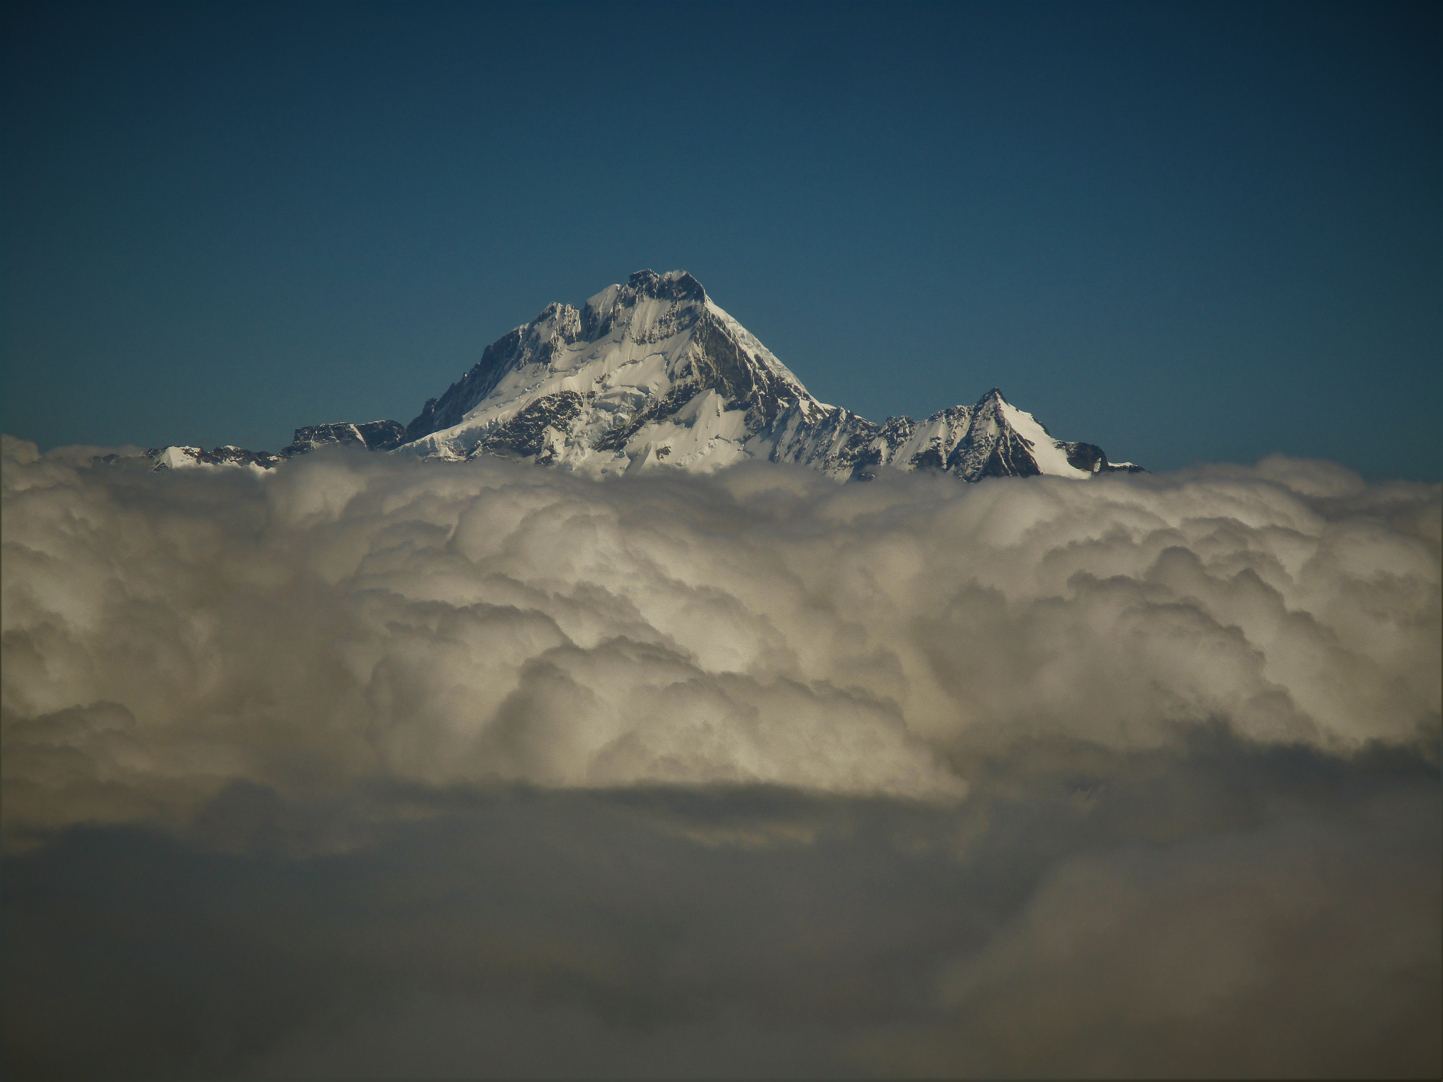 Stunning Sefton again, now rising above the clouds we descended into and looking very Himalayan in character.